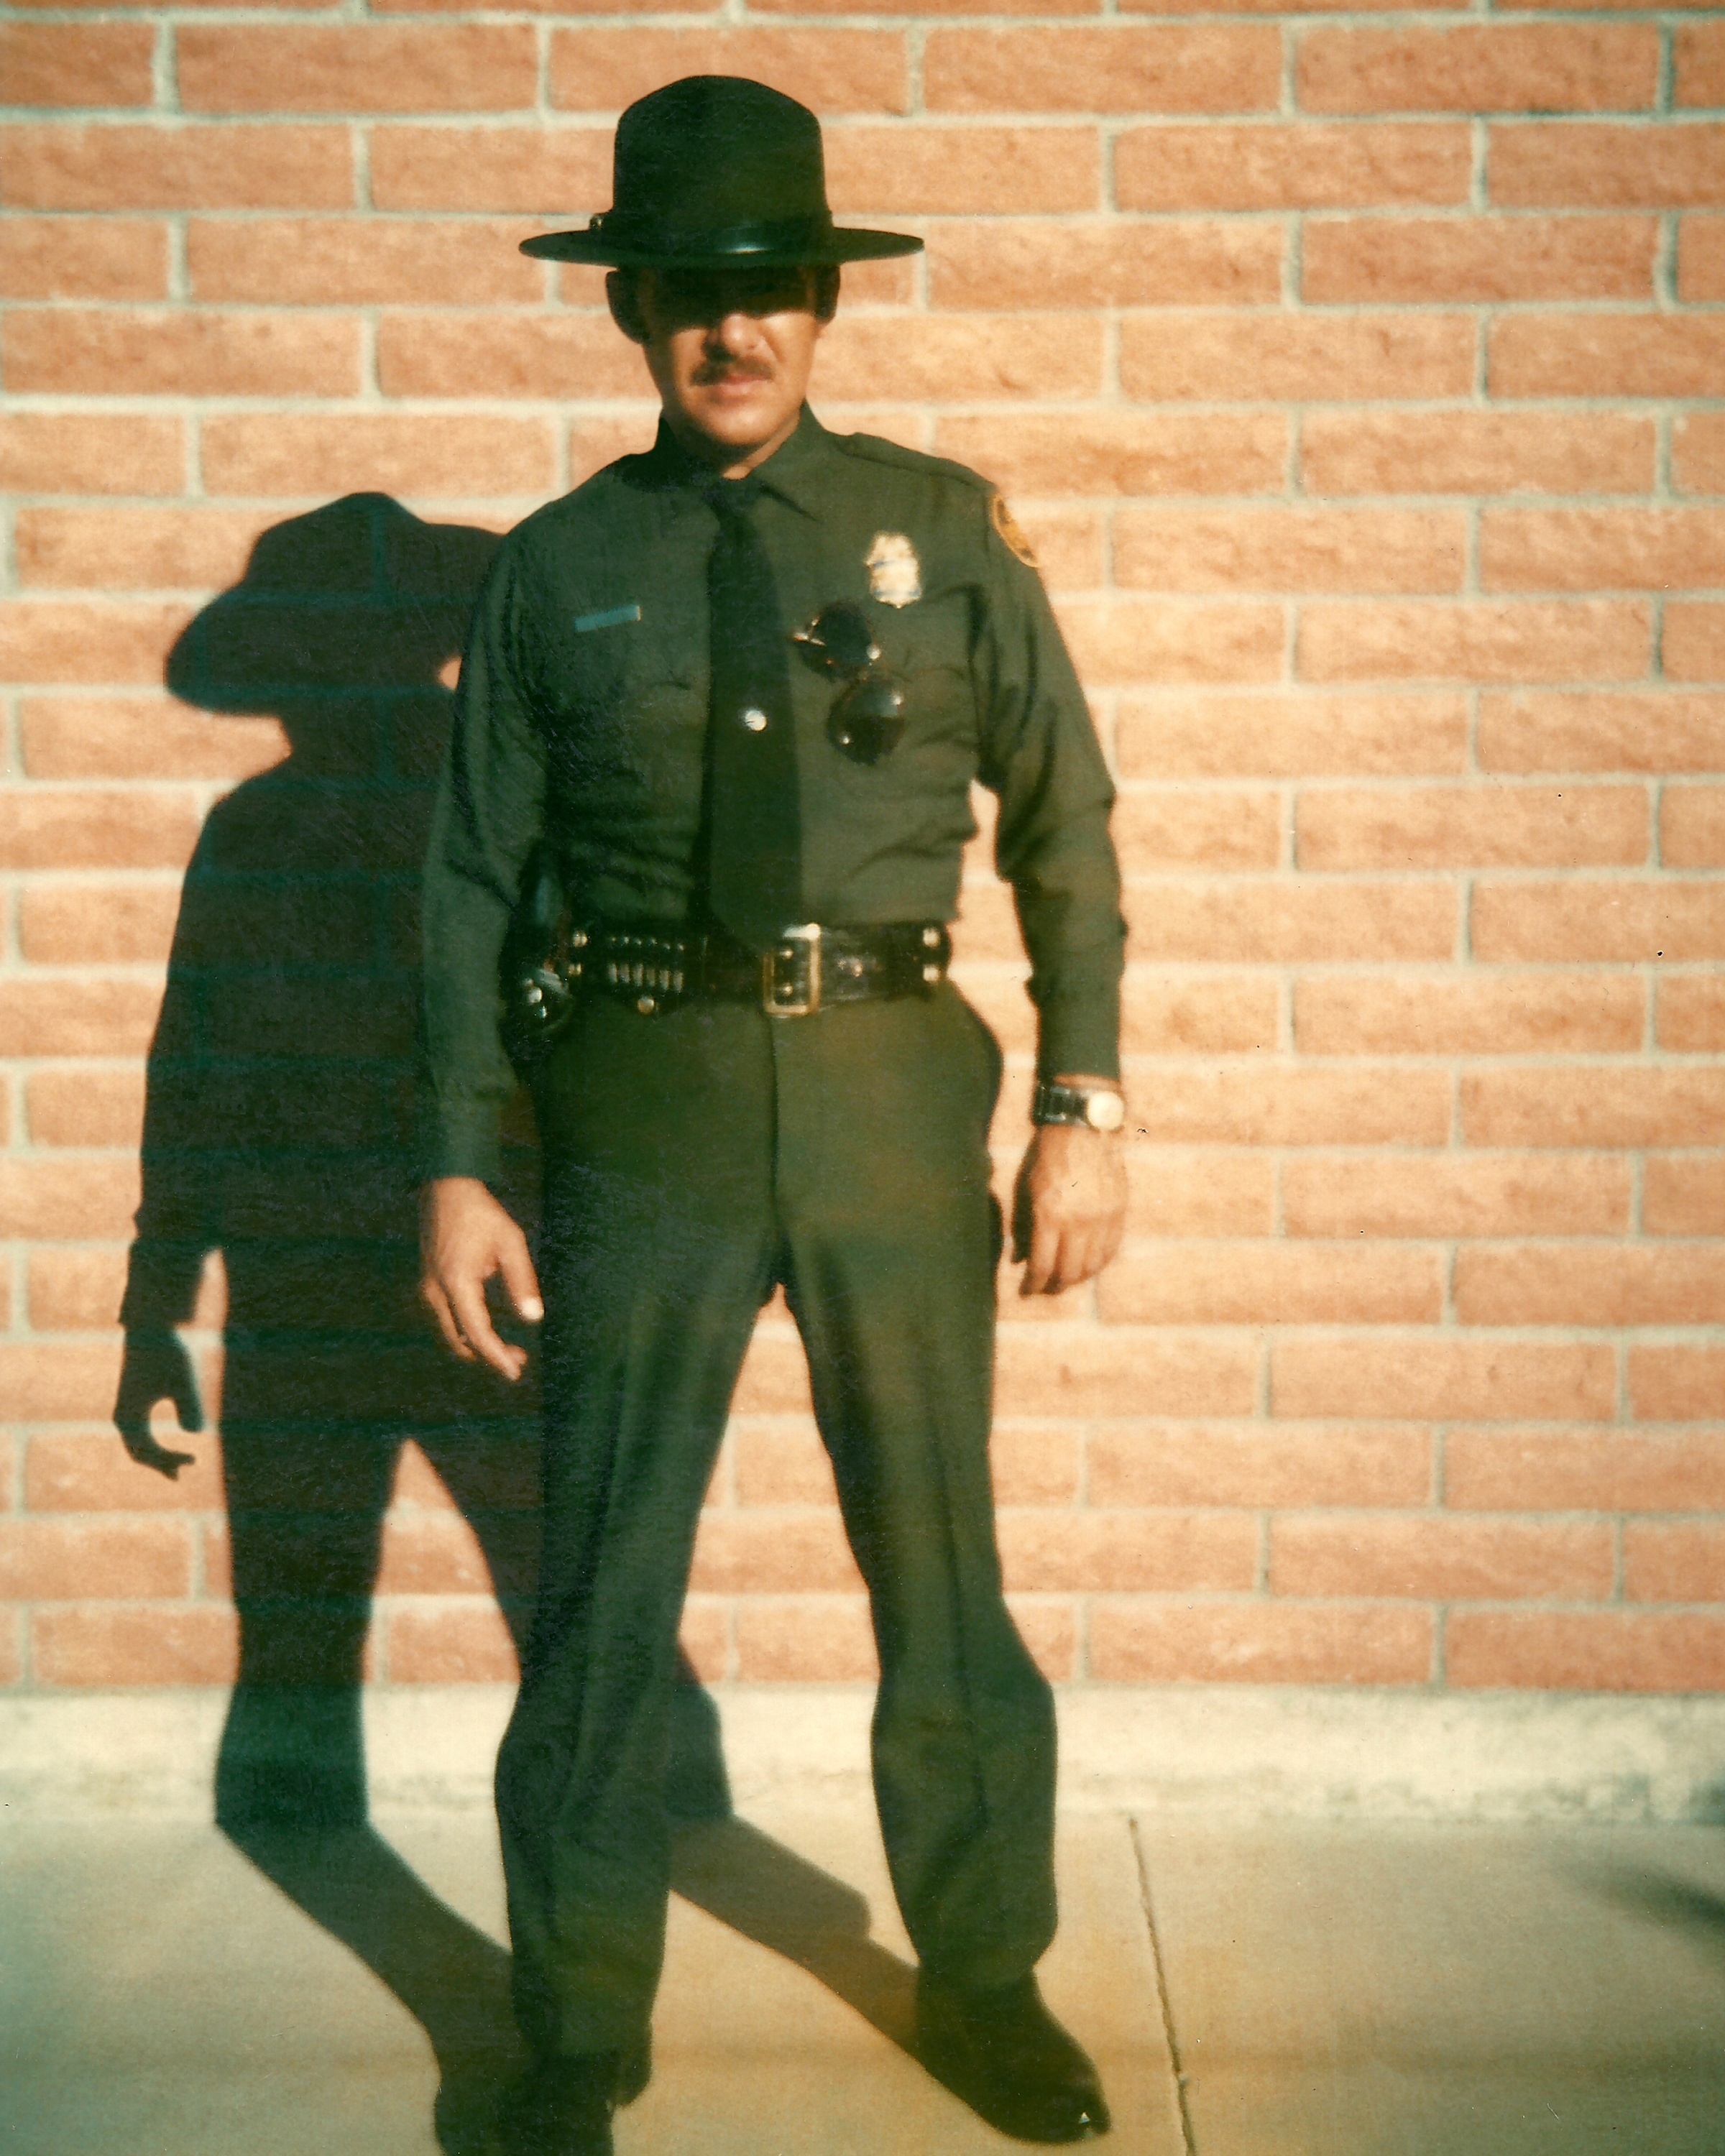 Patrol Agent Victor C. Ochoa | United States Department of Justice - Immigration and Naturalization Service - United States Border Patrol, U.S. Government